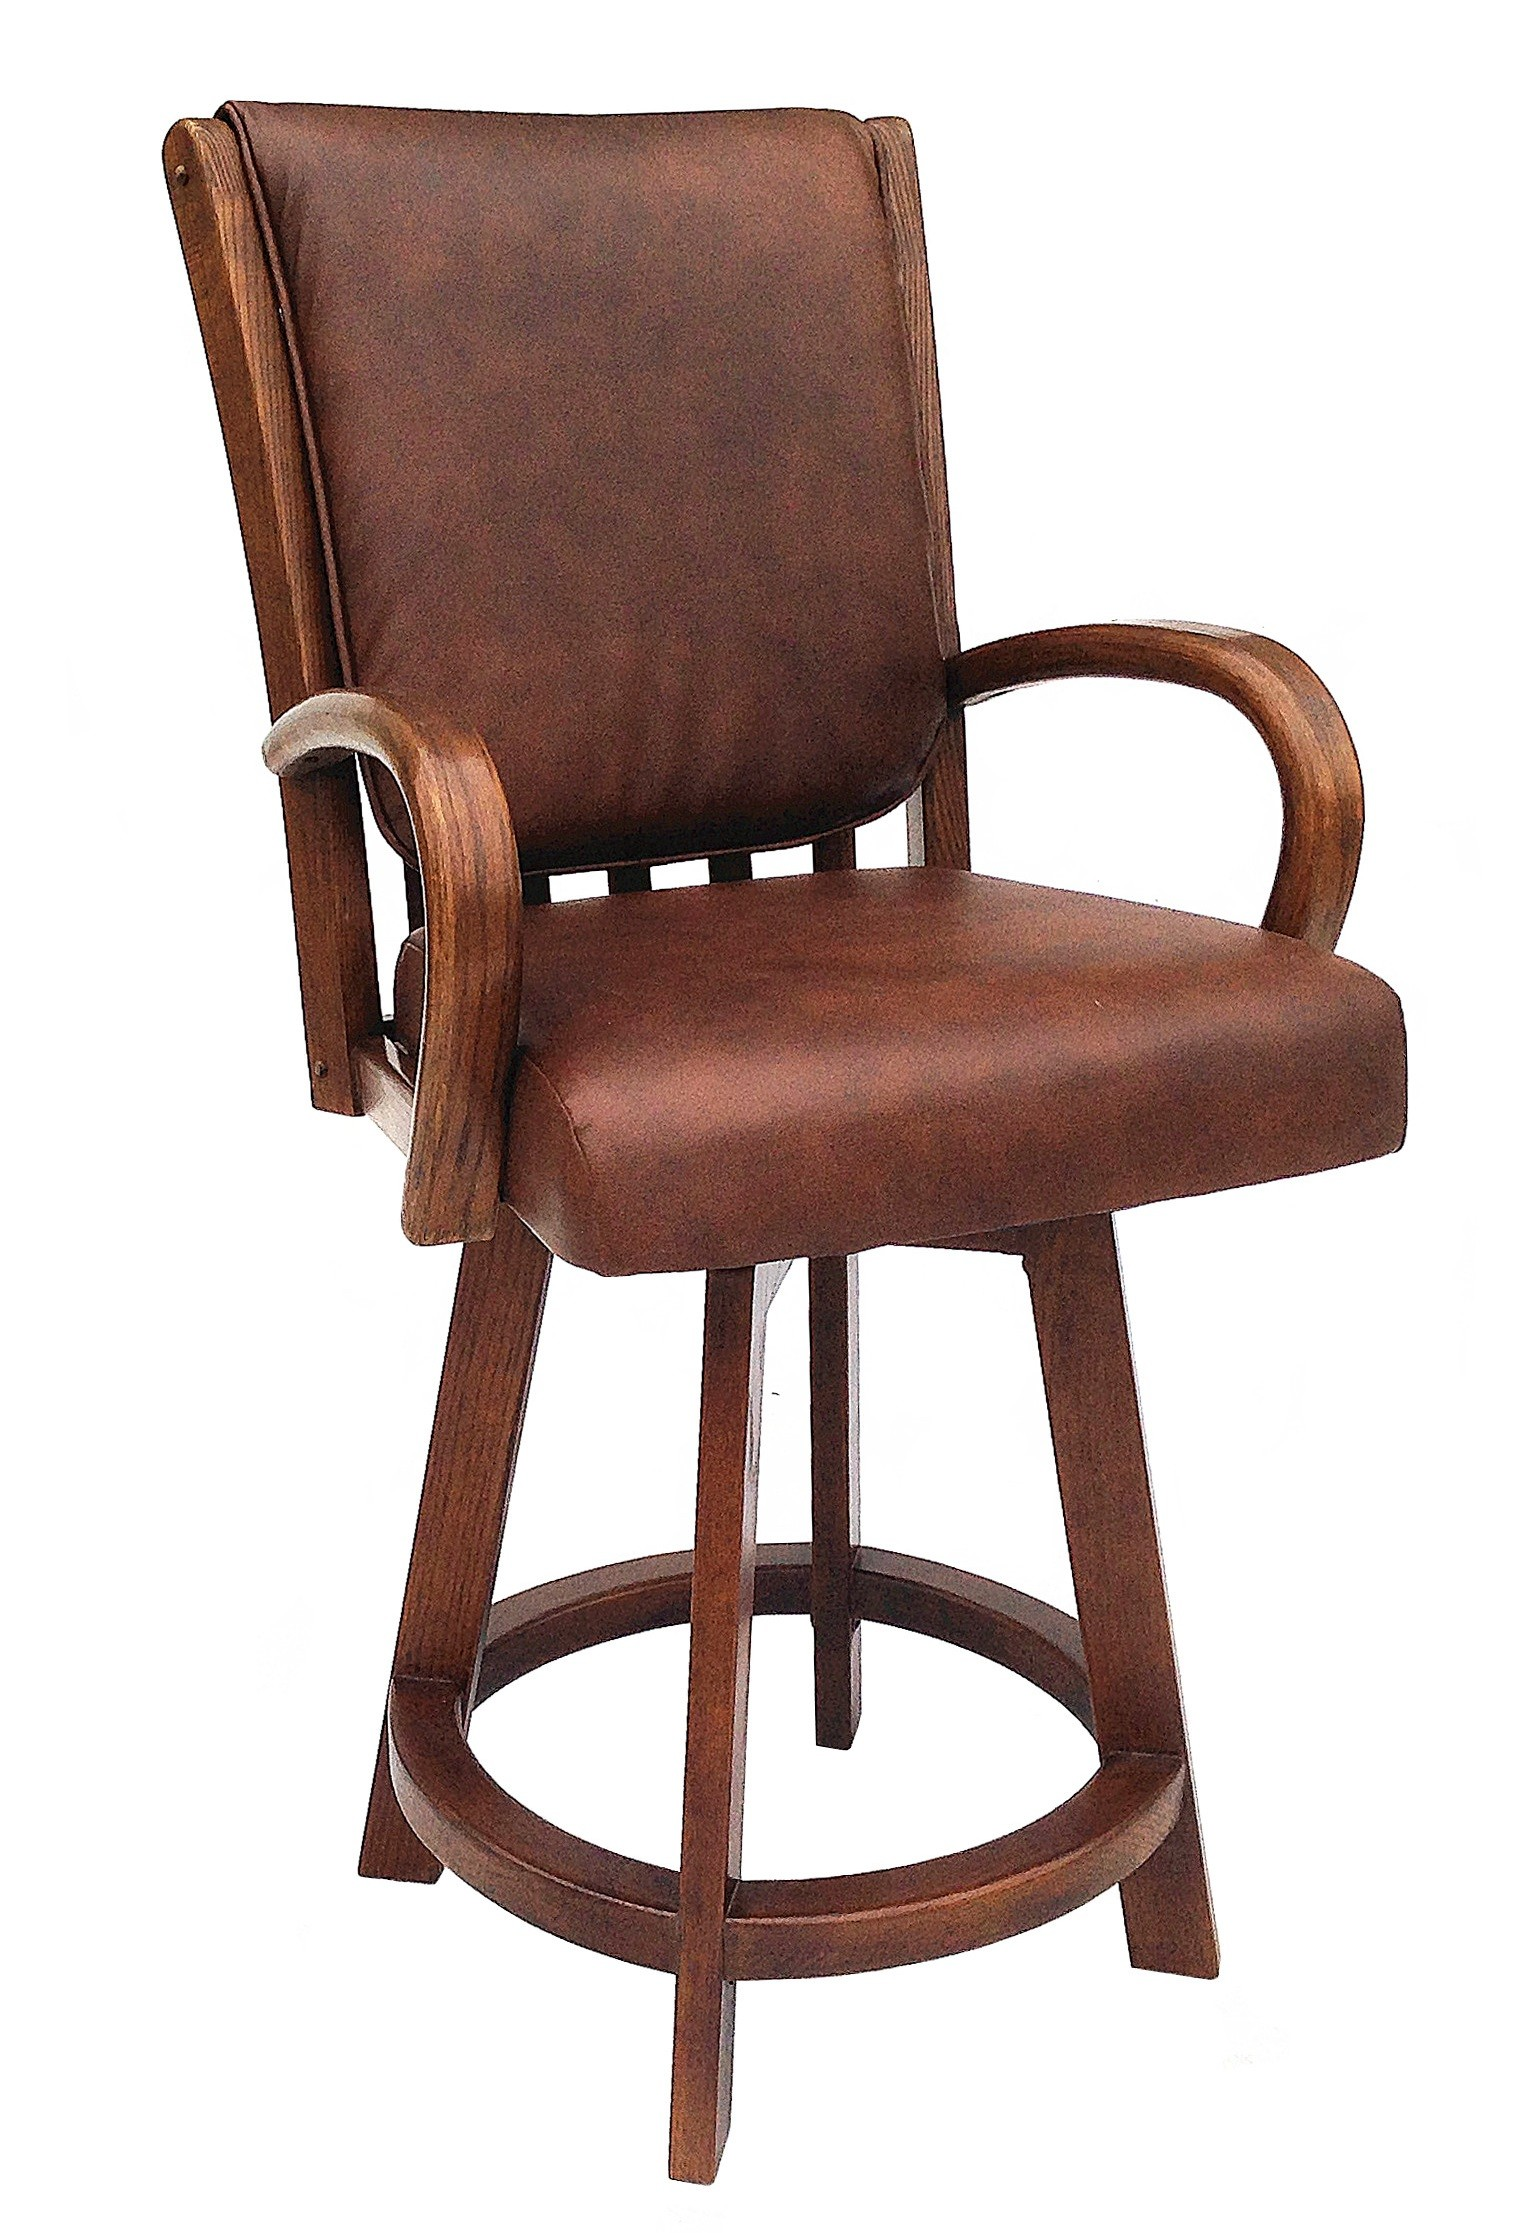 chair and stool heights rental columbus ohio chromcraft core c177 384 swivel counter height 24 quot bar